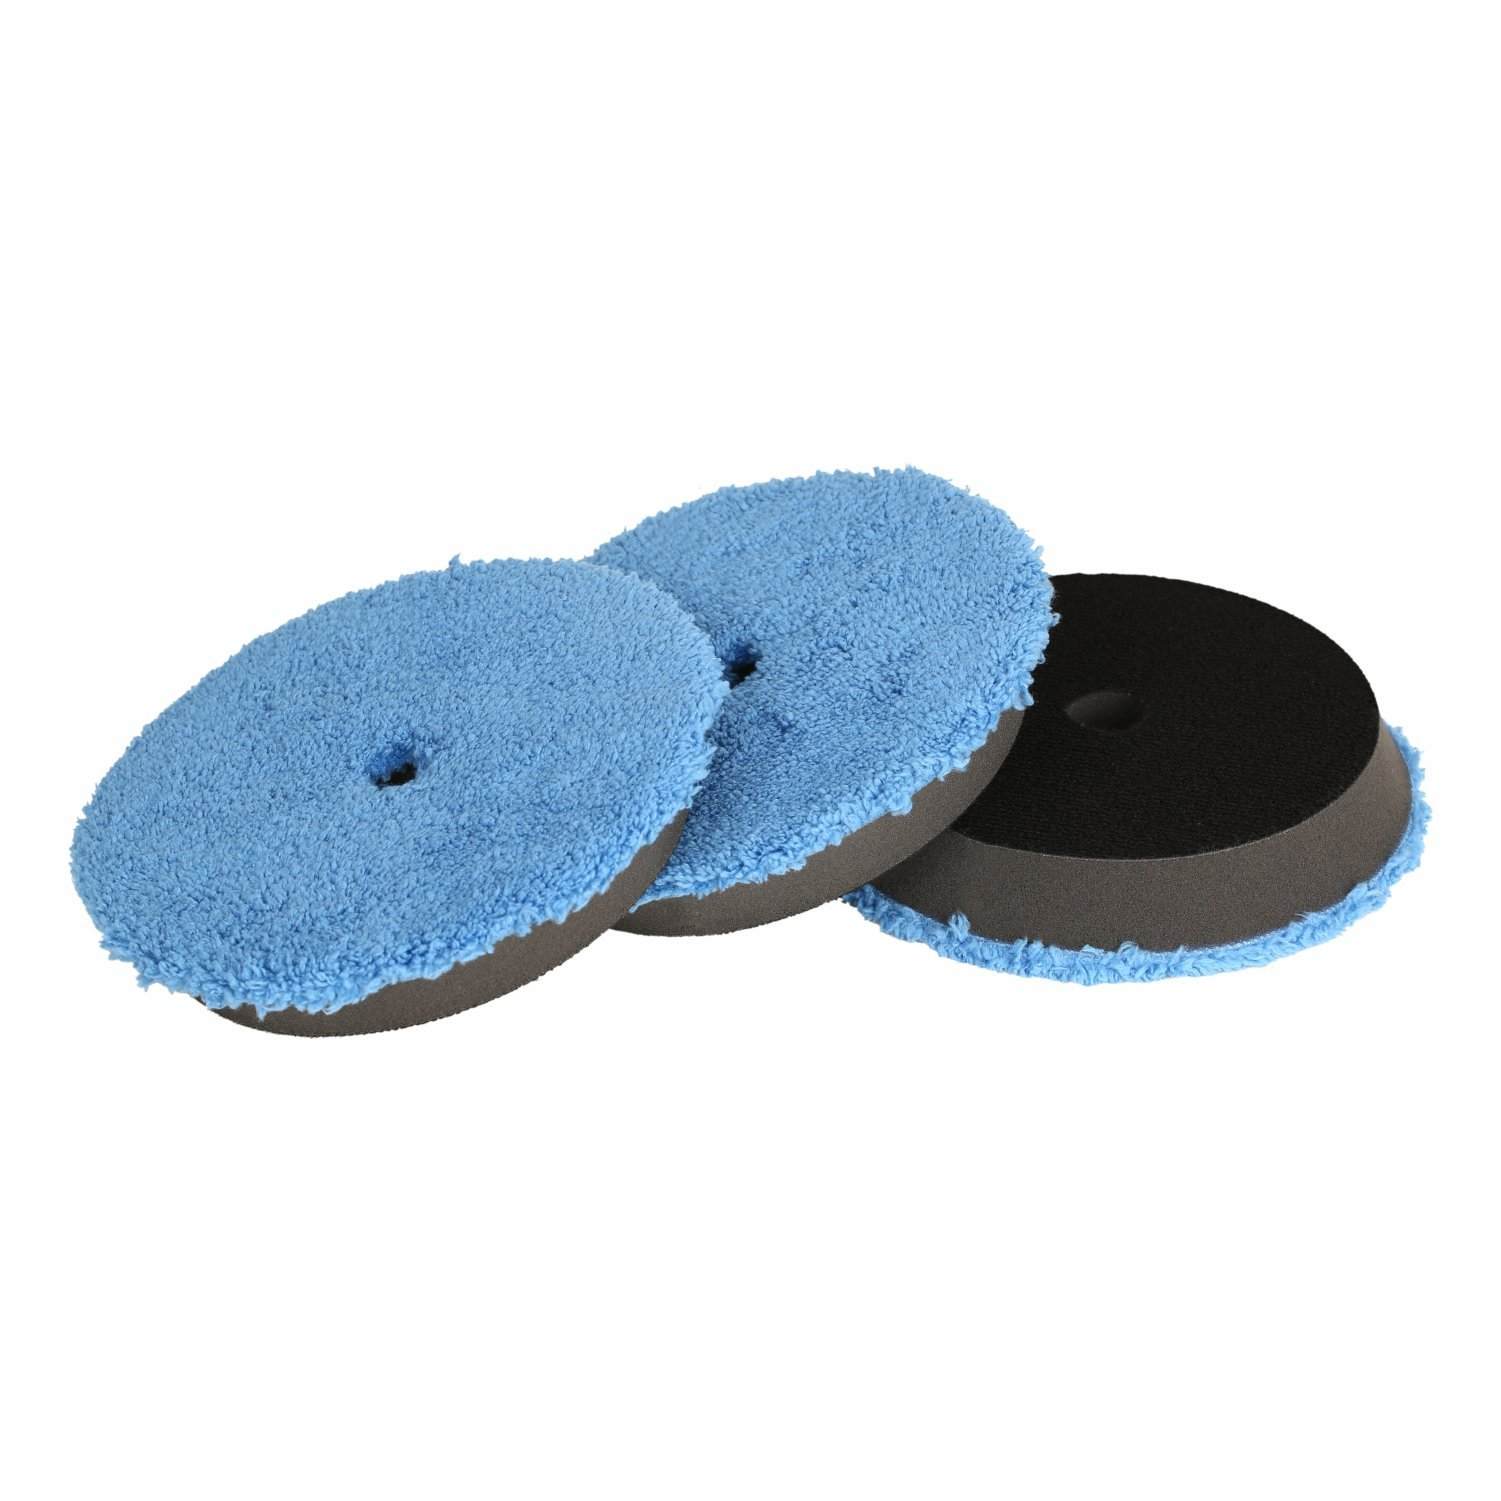 SPTA Micro Fiber FAST Finishing Pad 3 Pcs 6 inch (150 mm) Polishing pads,Buffing Pads Kits For 5 Inch (125mm) DA/RO Car Polisher